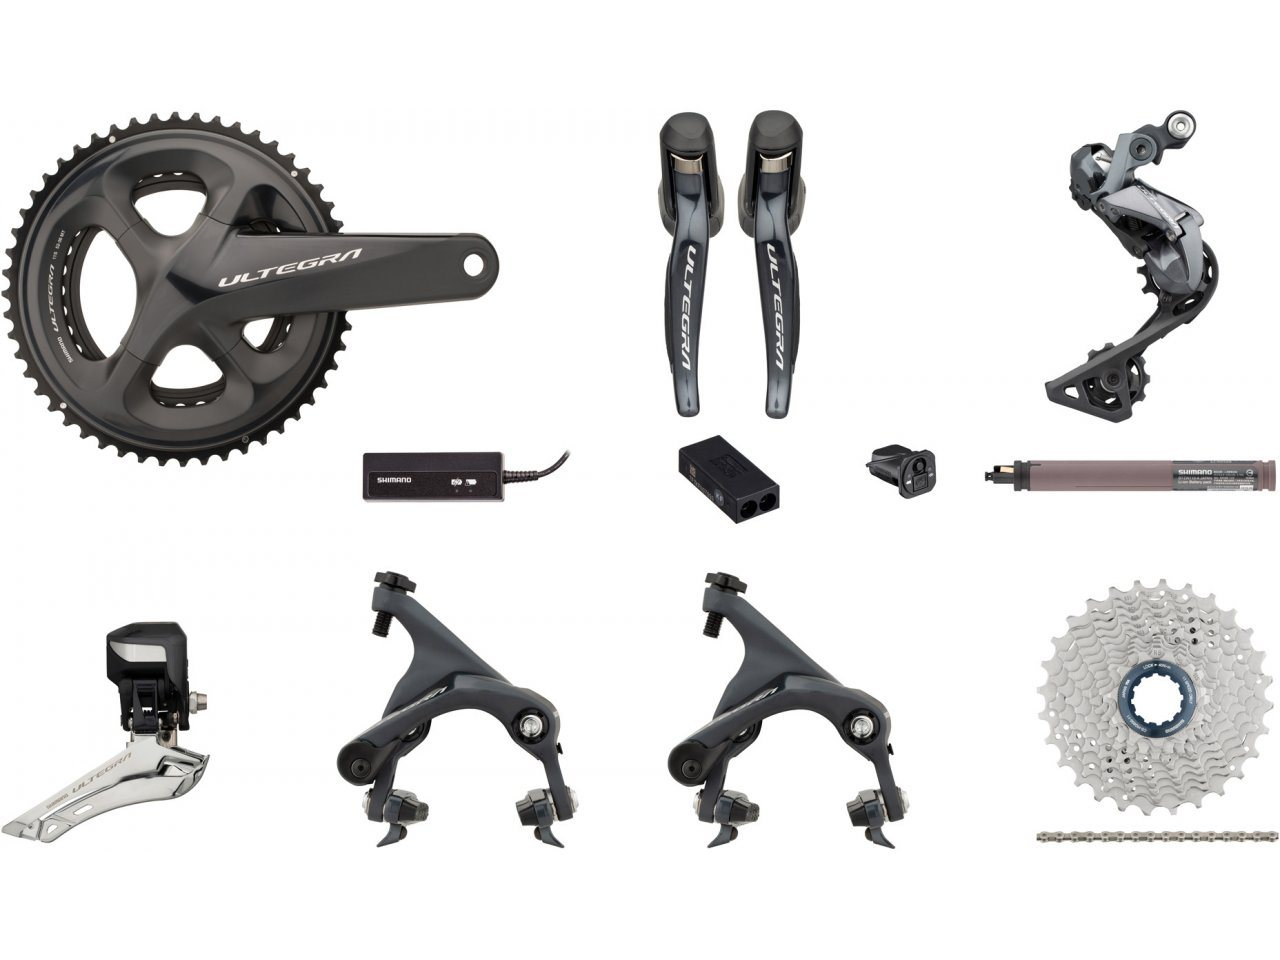 Shimano Ultegra Di2 R8050 2x11 36-52 Groupset w/ Direct Mount ...